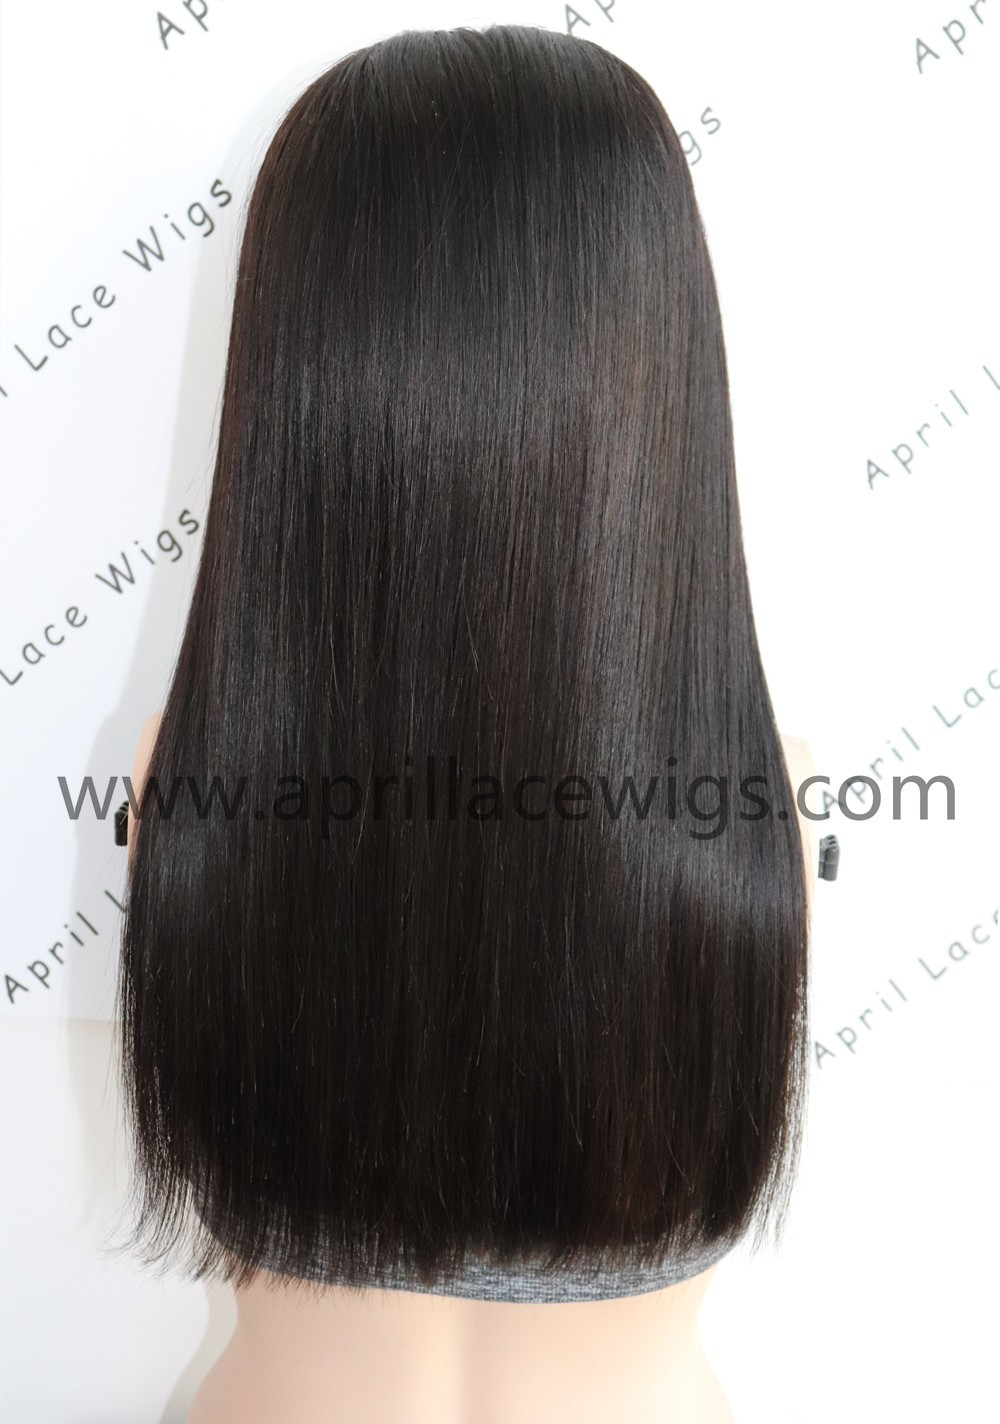 silk straight long blunt cut glueless 360 wig with preplucked hairline